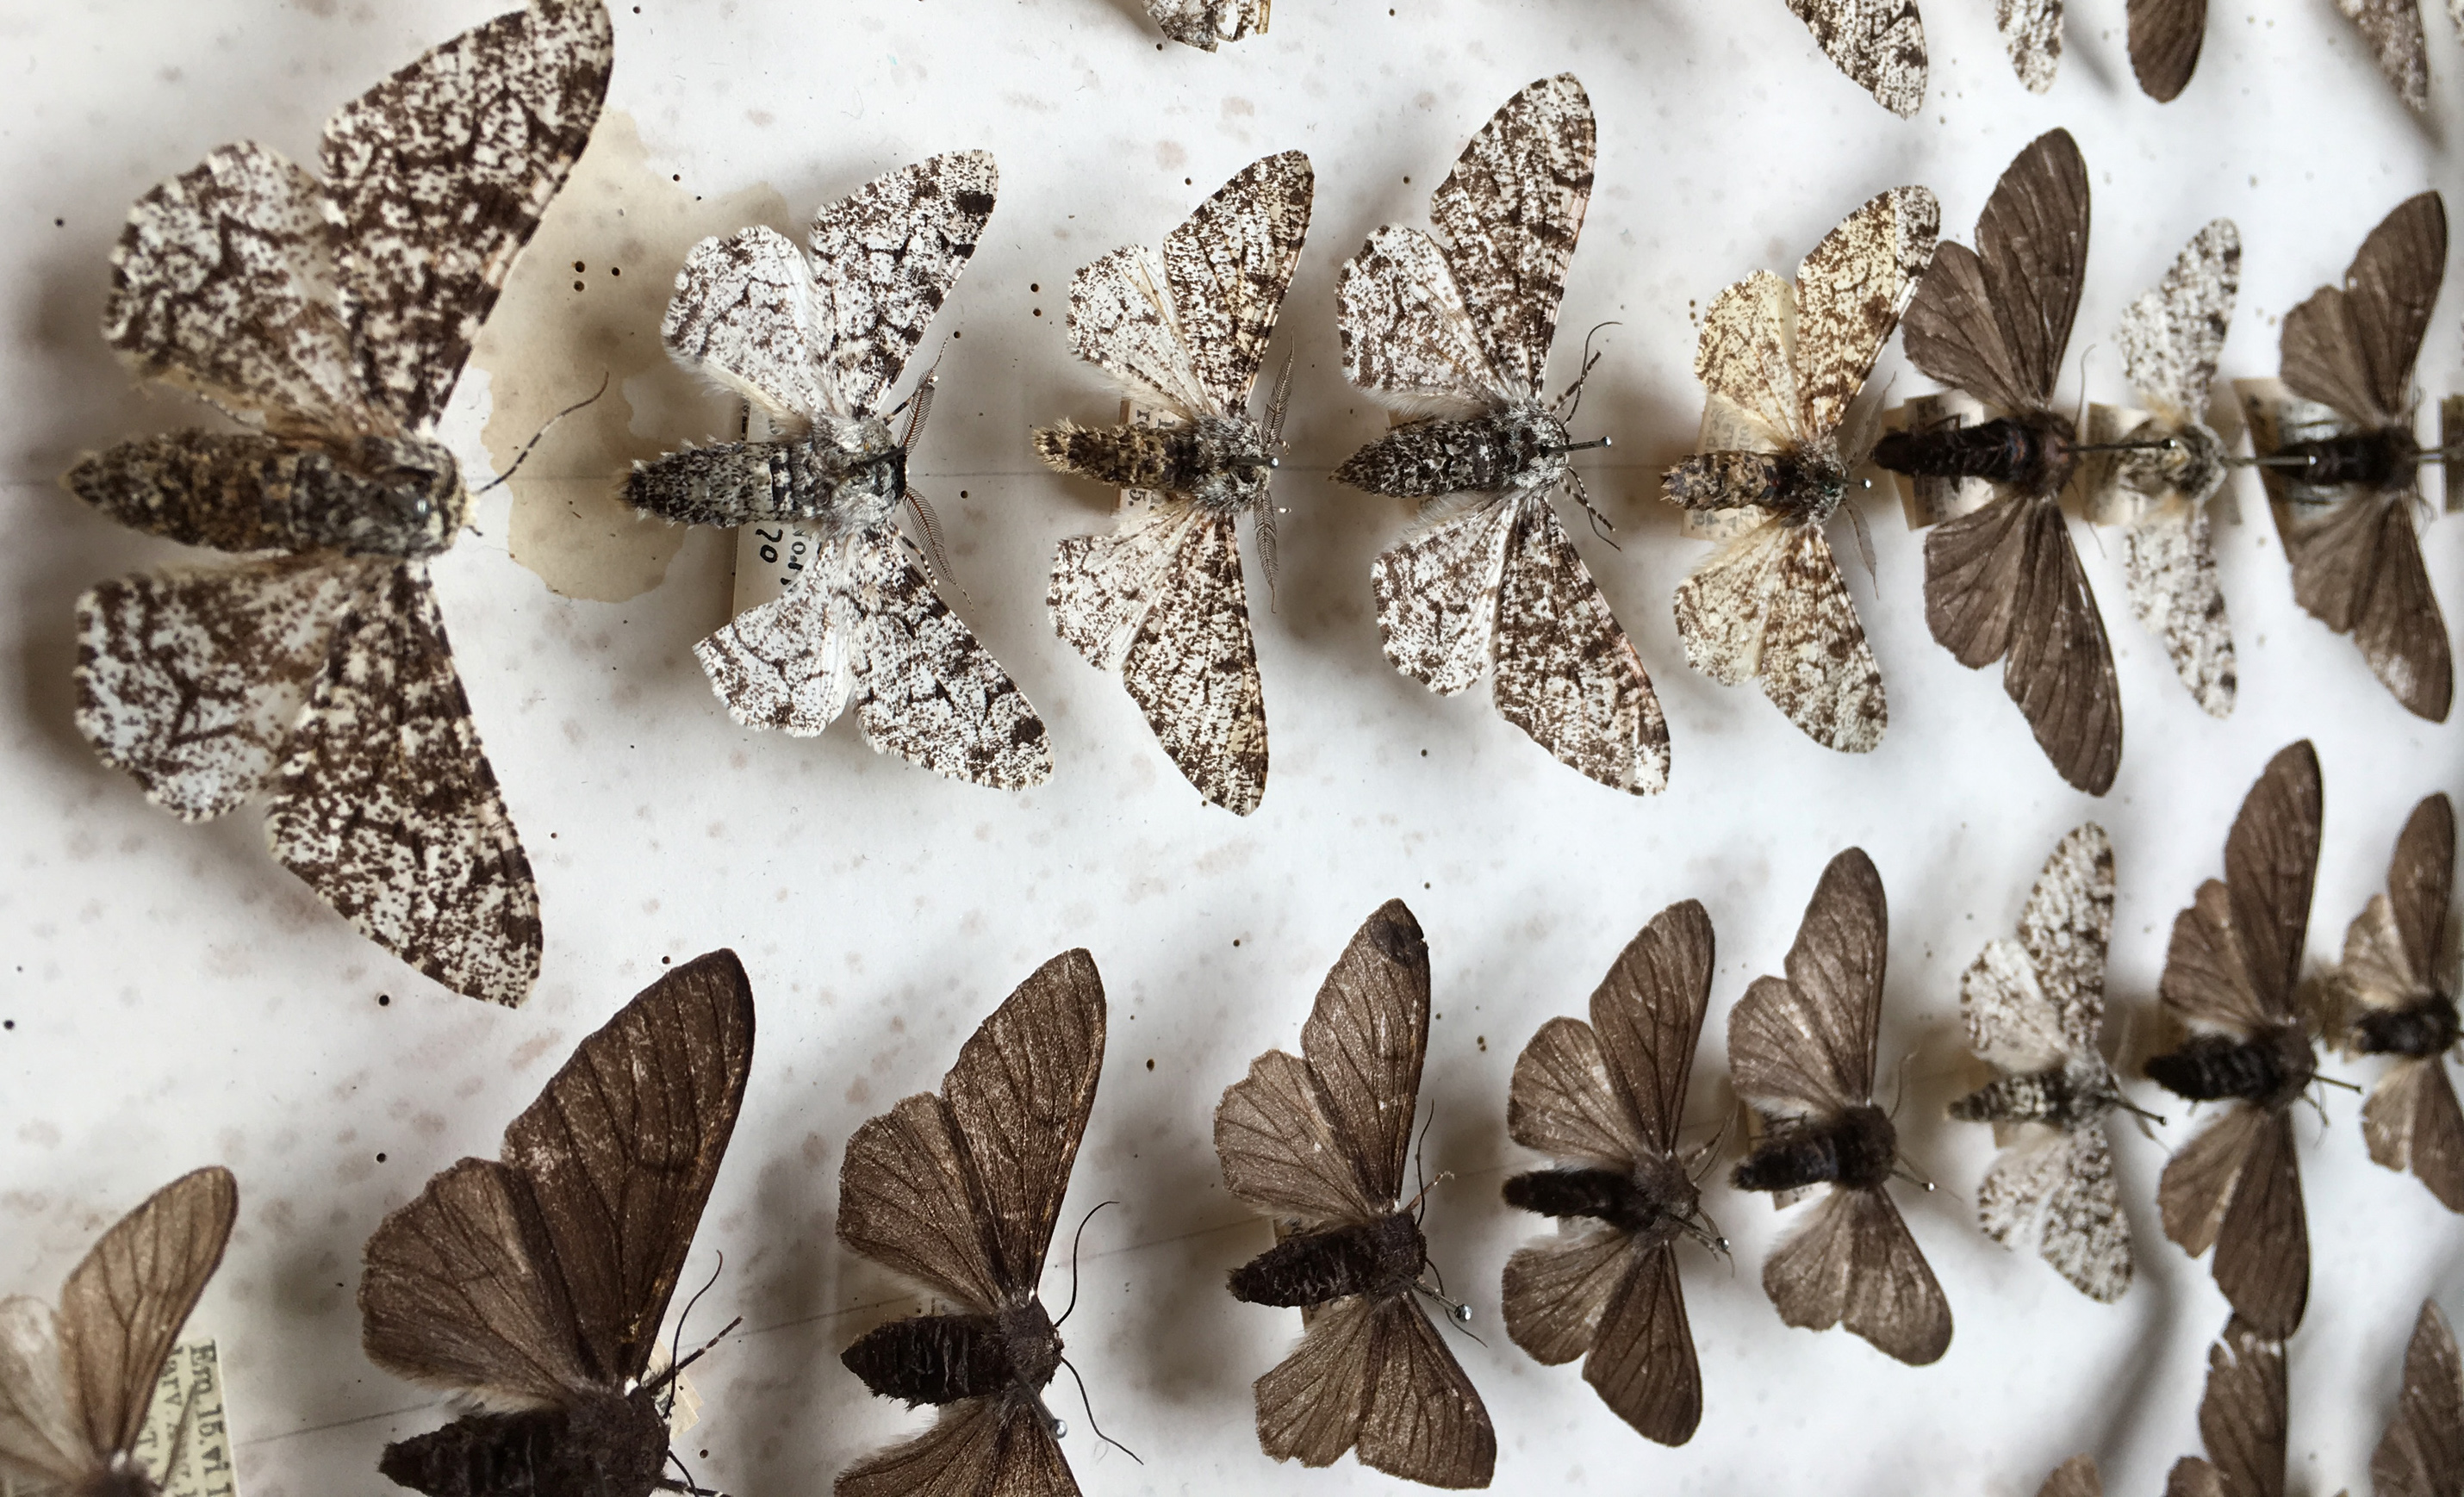 Pale moths are safer when there is less pollution, while darker moths have a better chance when the air is polluted.